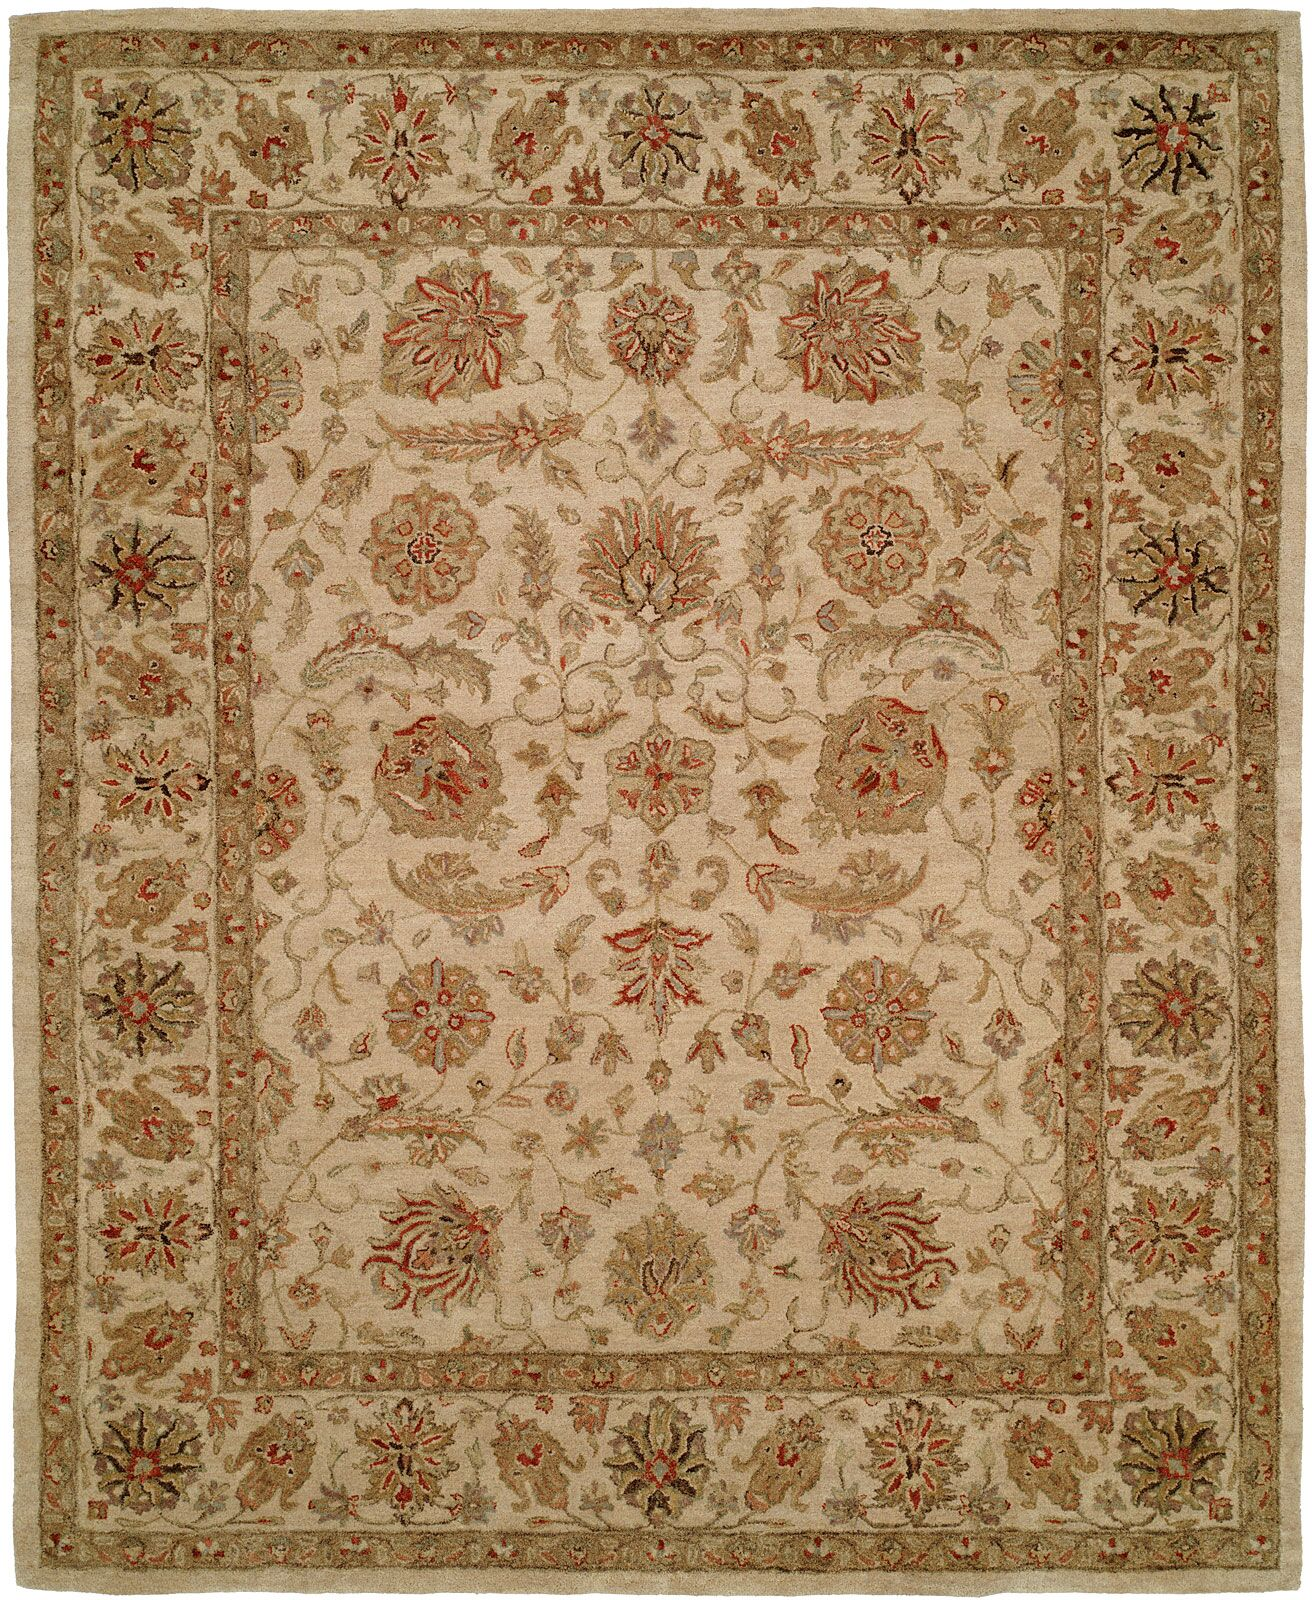 Biswas Hand-Woven Beige Area Rug Rug Size: Rectangle 6' x 9'